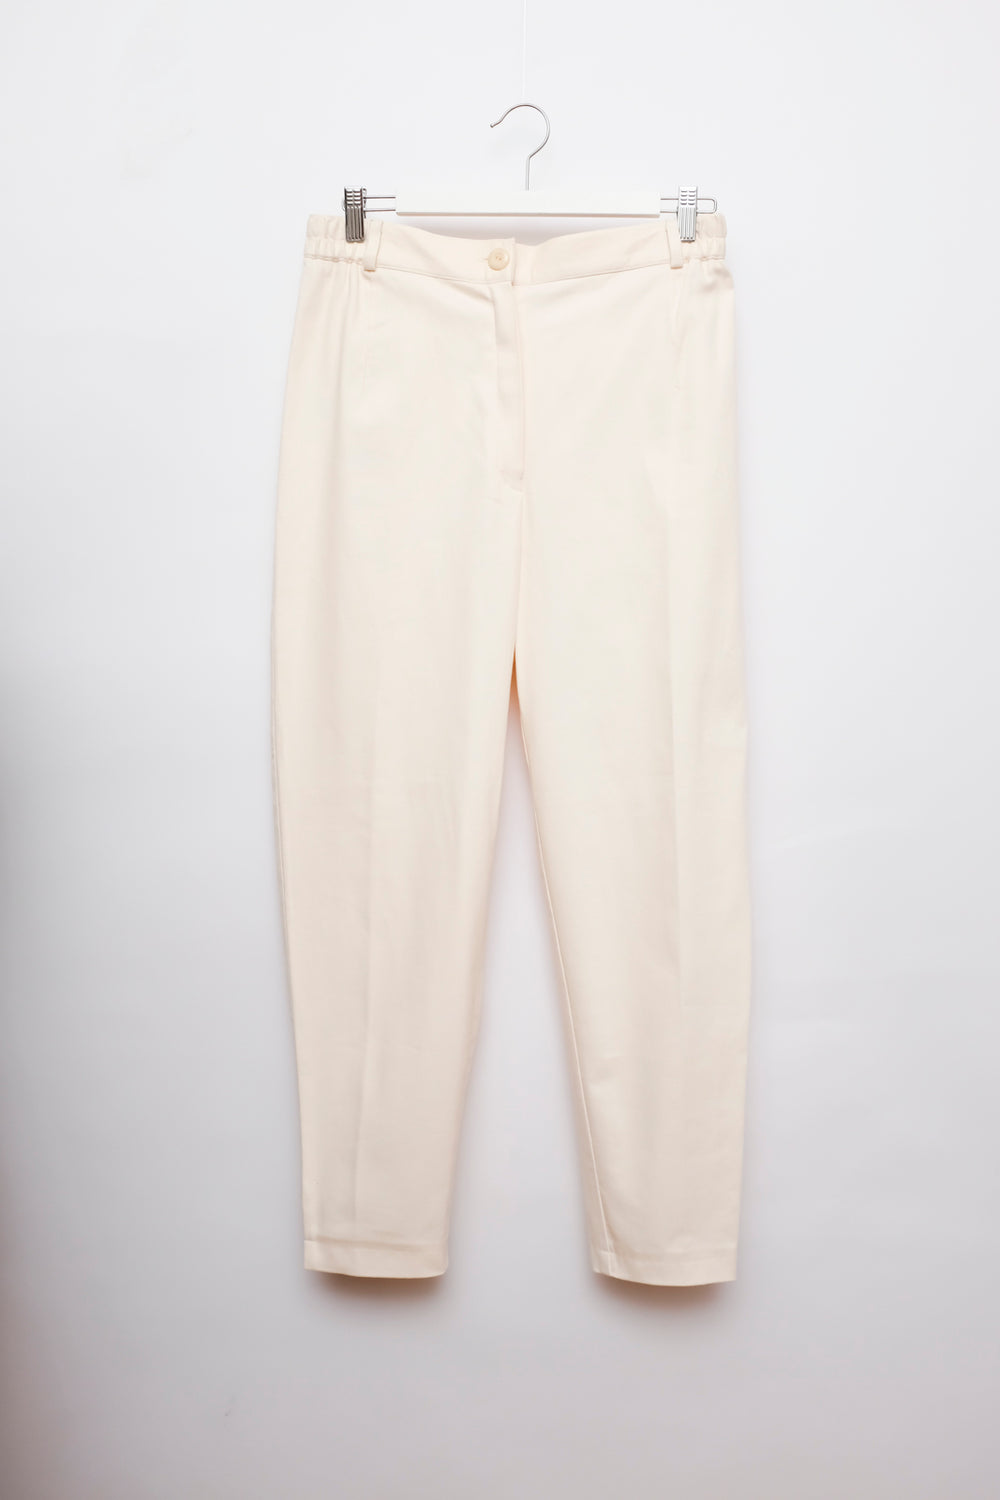 0001_VANILLA COTTON PANTS